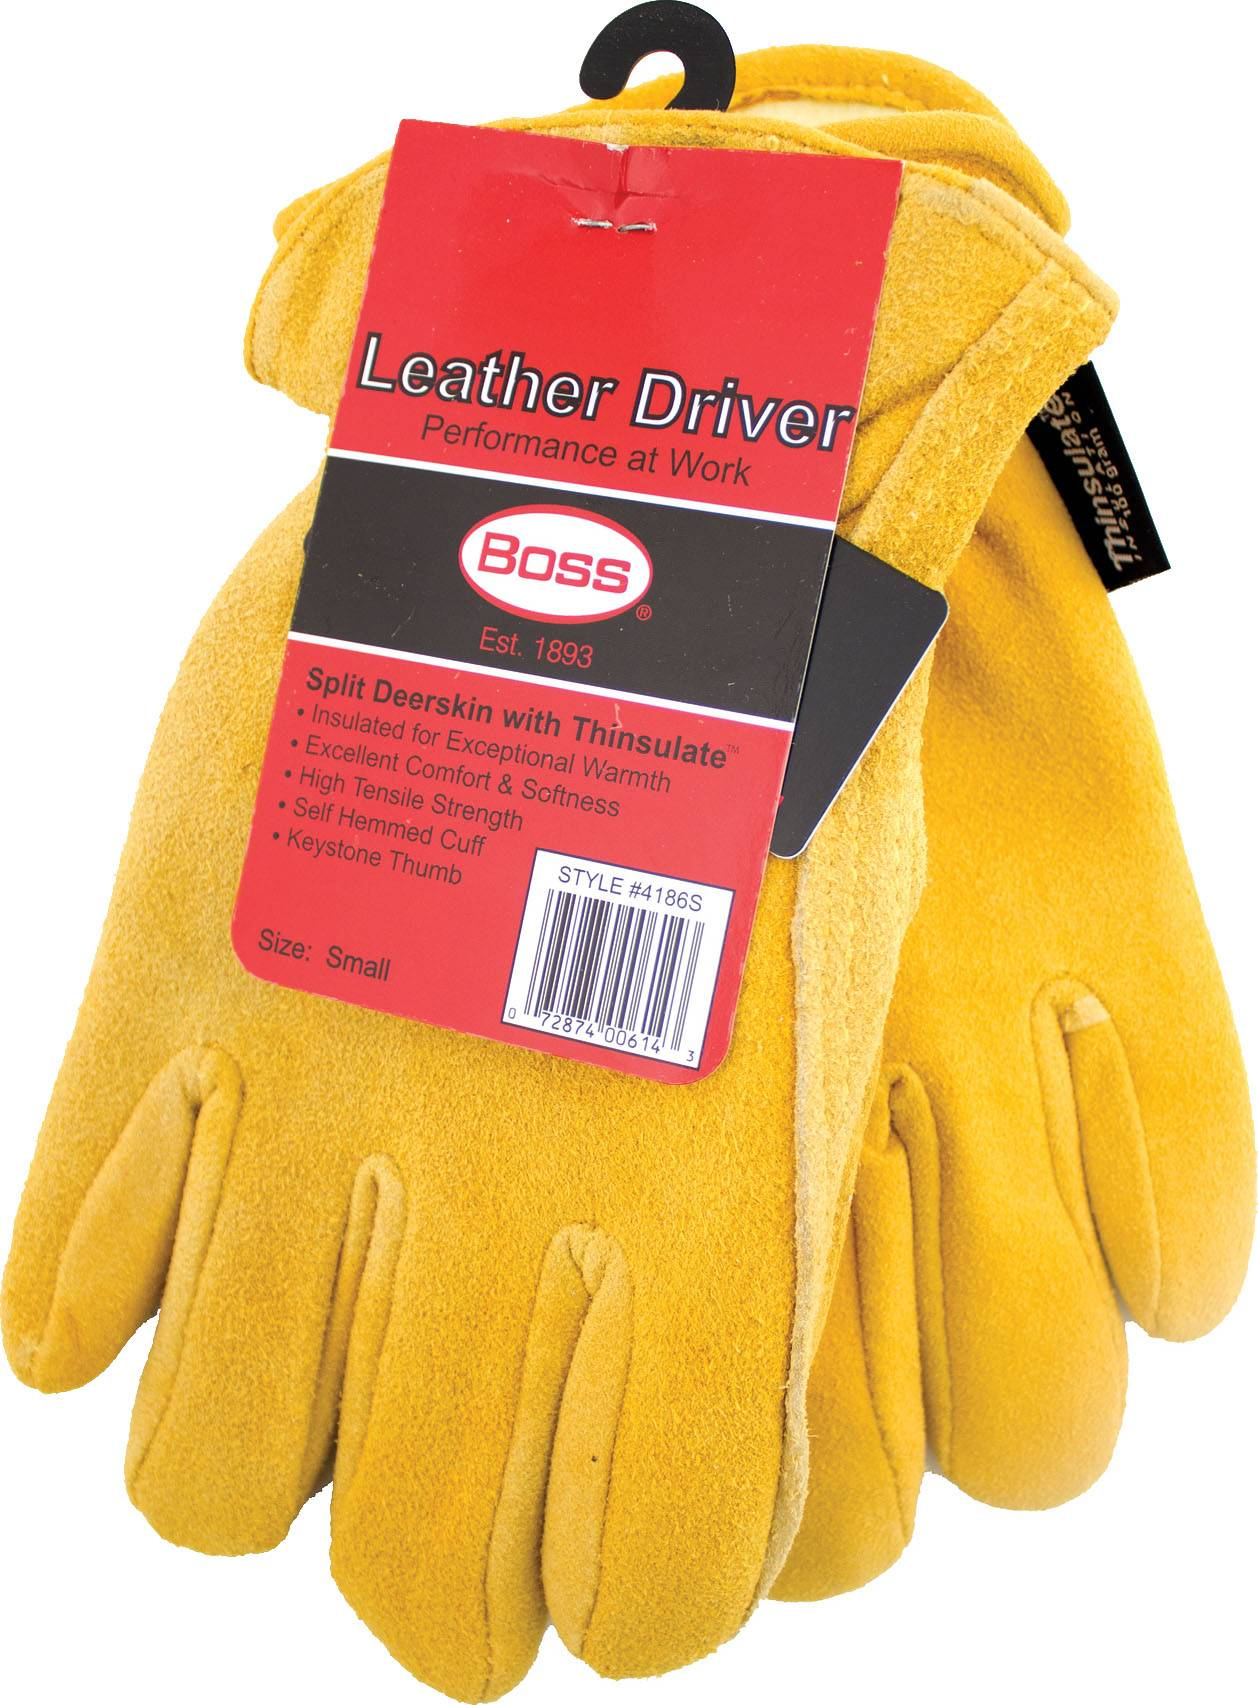 Boss Therm Insulated Split Deerskin Driver Glove